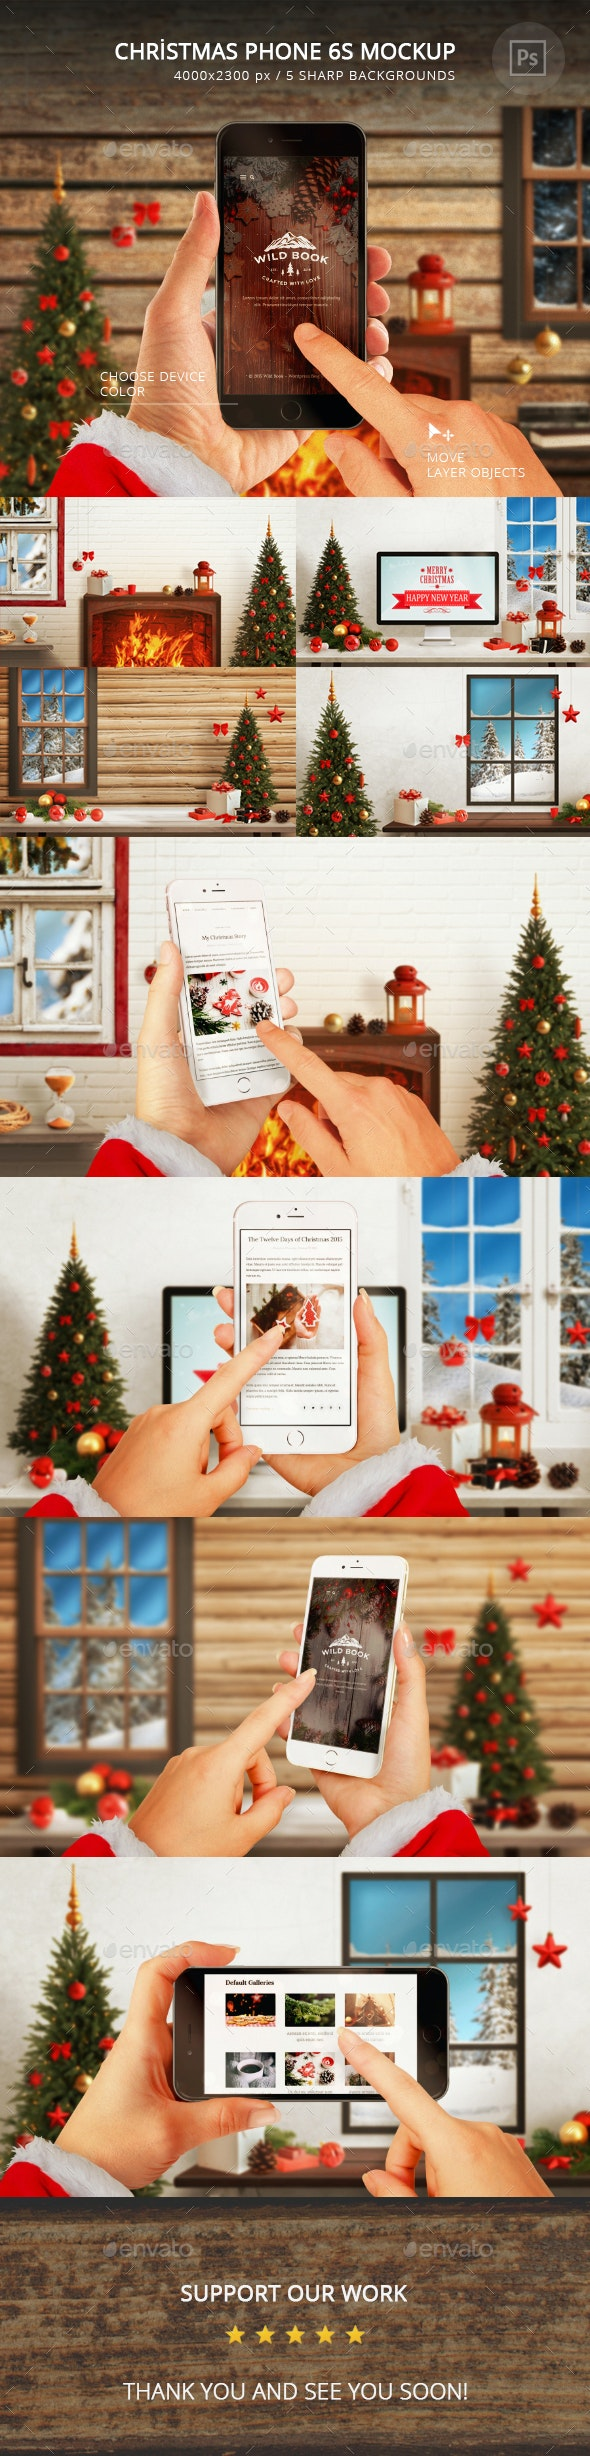 Christmas Phone 6S Mockup - Mobile Displays